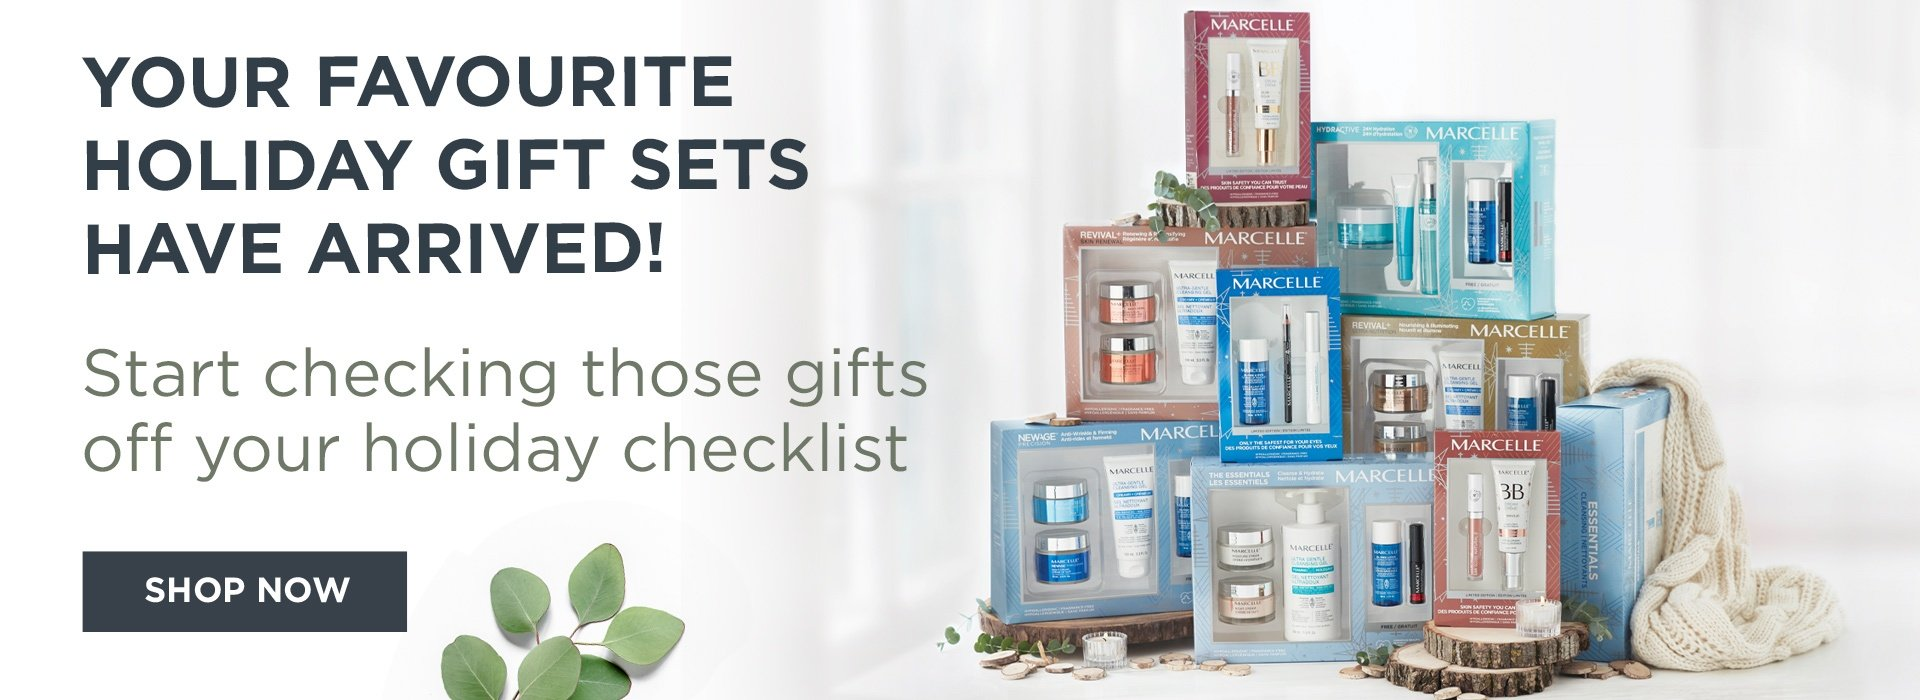 skin care and makeup sets